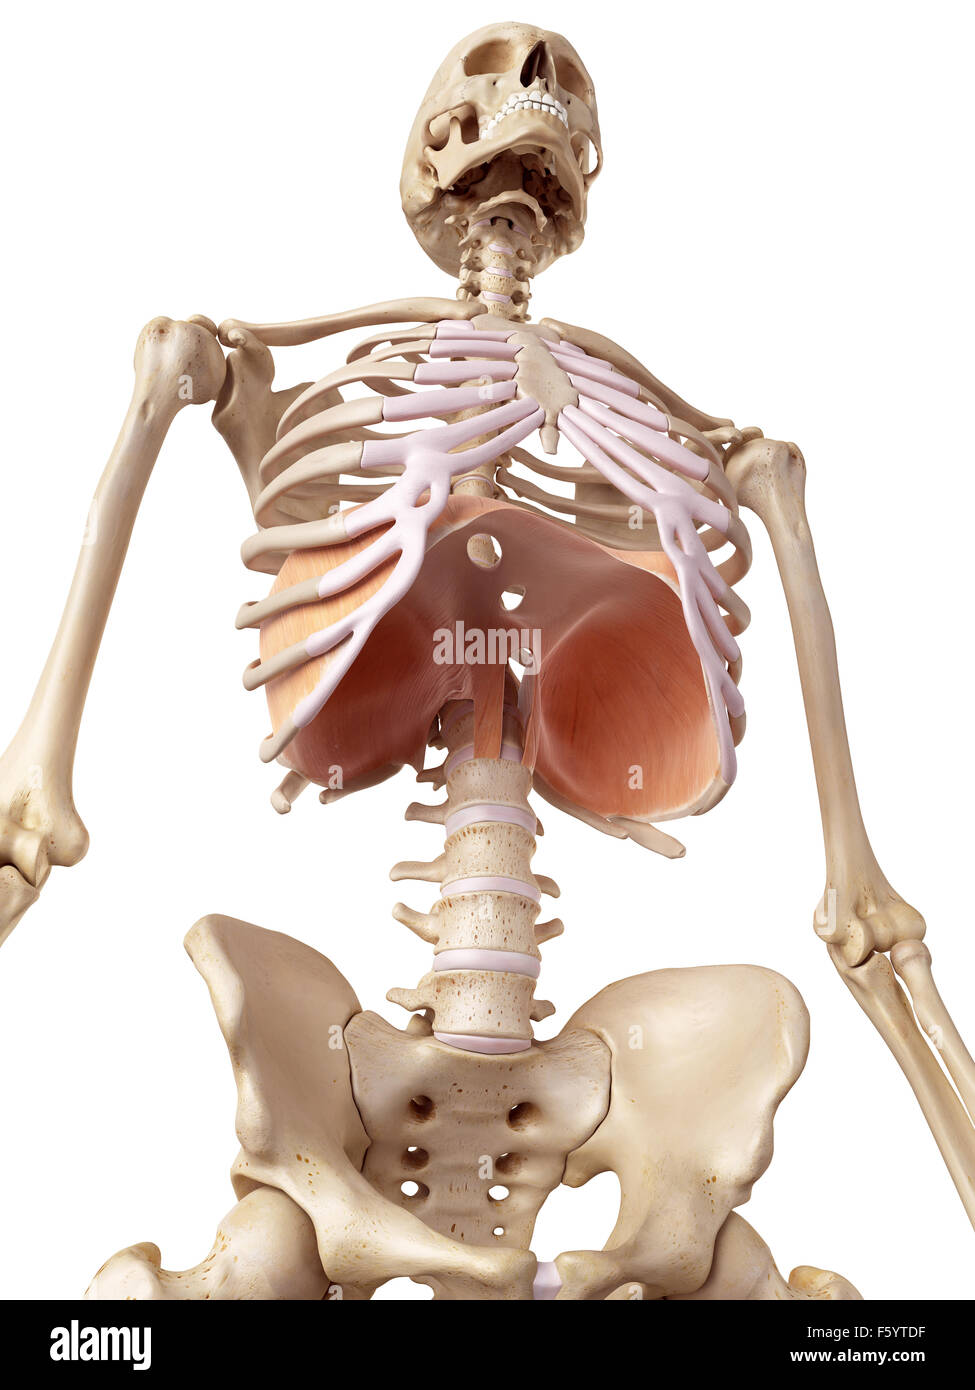 medical accurate illustration of the diaphragm - Stock Image